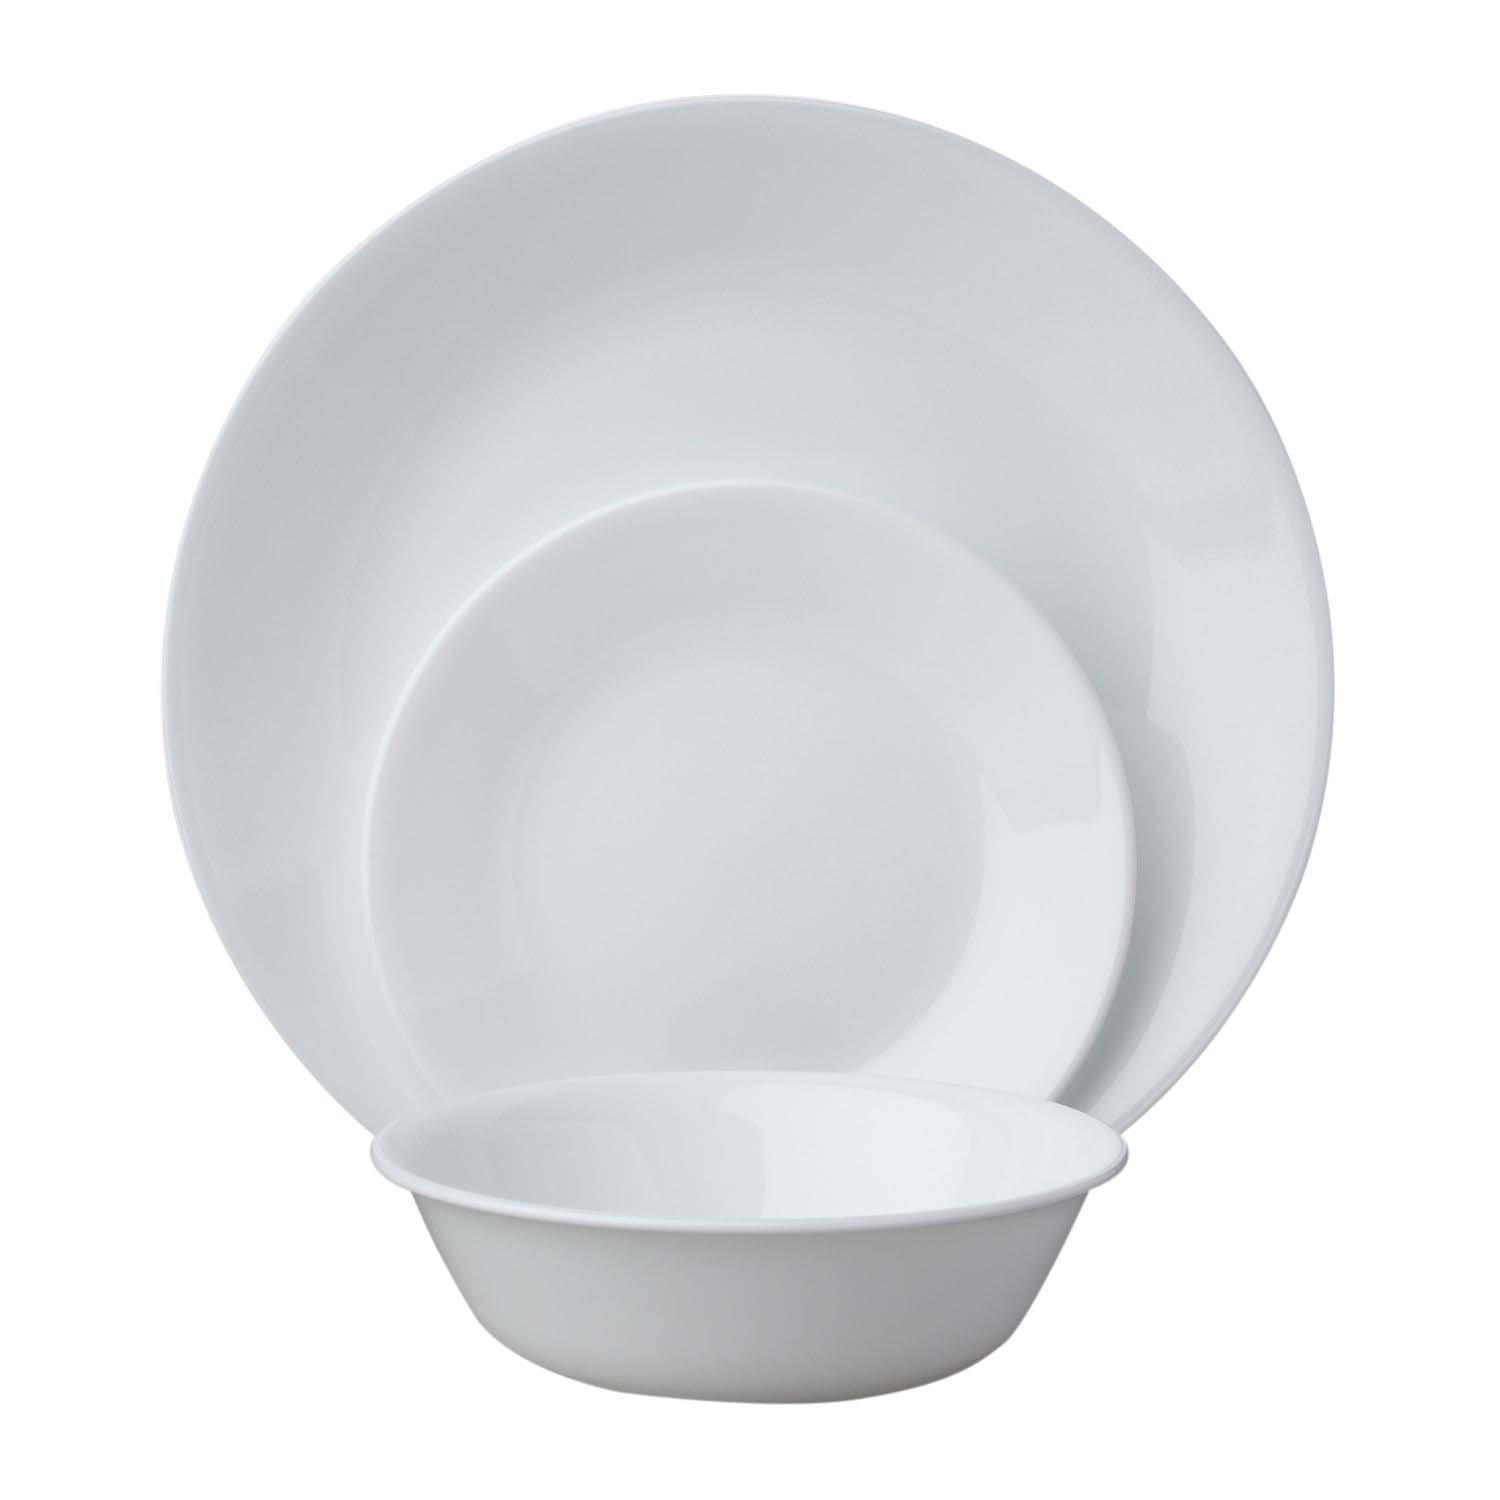 Corelle Livingware 18-Piece Dinnerware Set, Winter Frost White, Service for 6 (1088609)